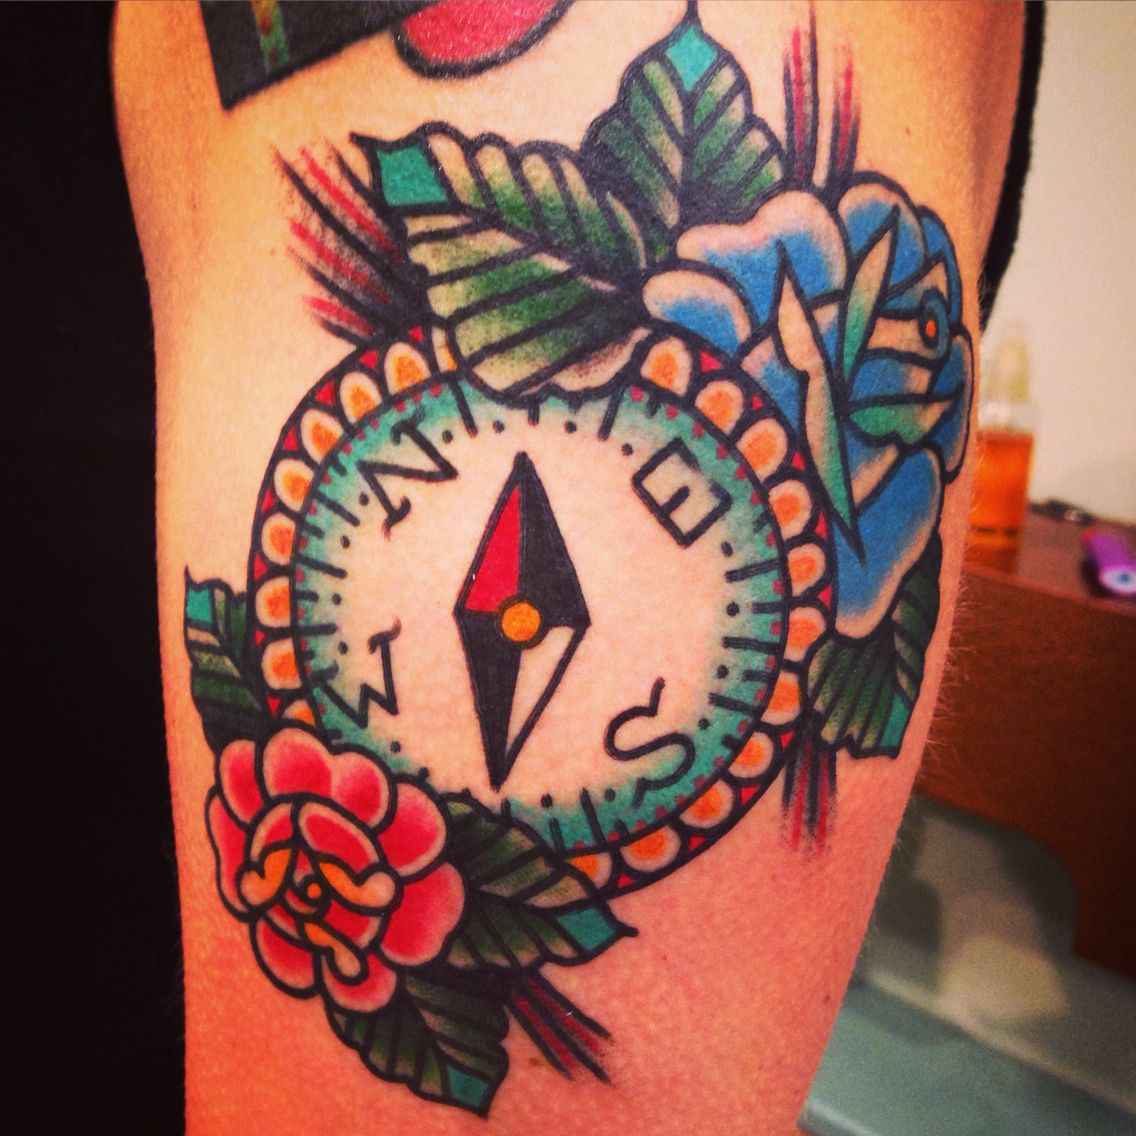 Compass tattoo done American traditional style ️ | Tattoos ...